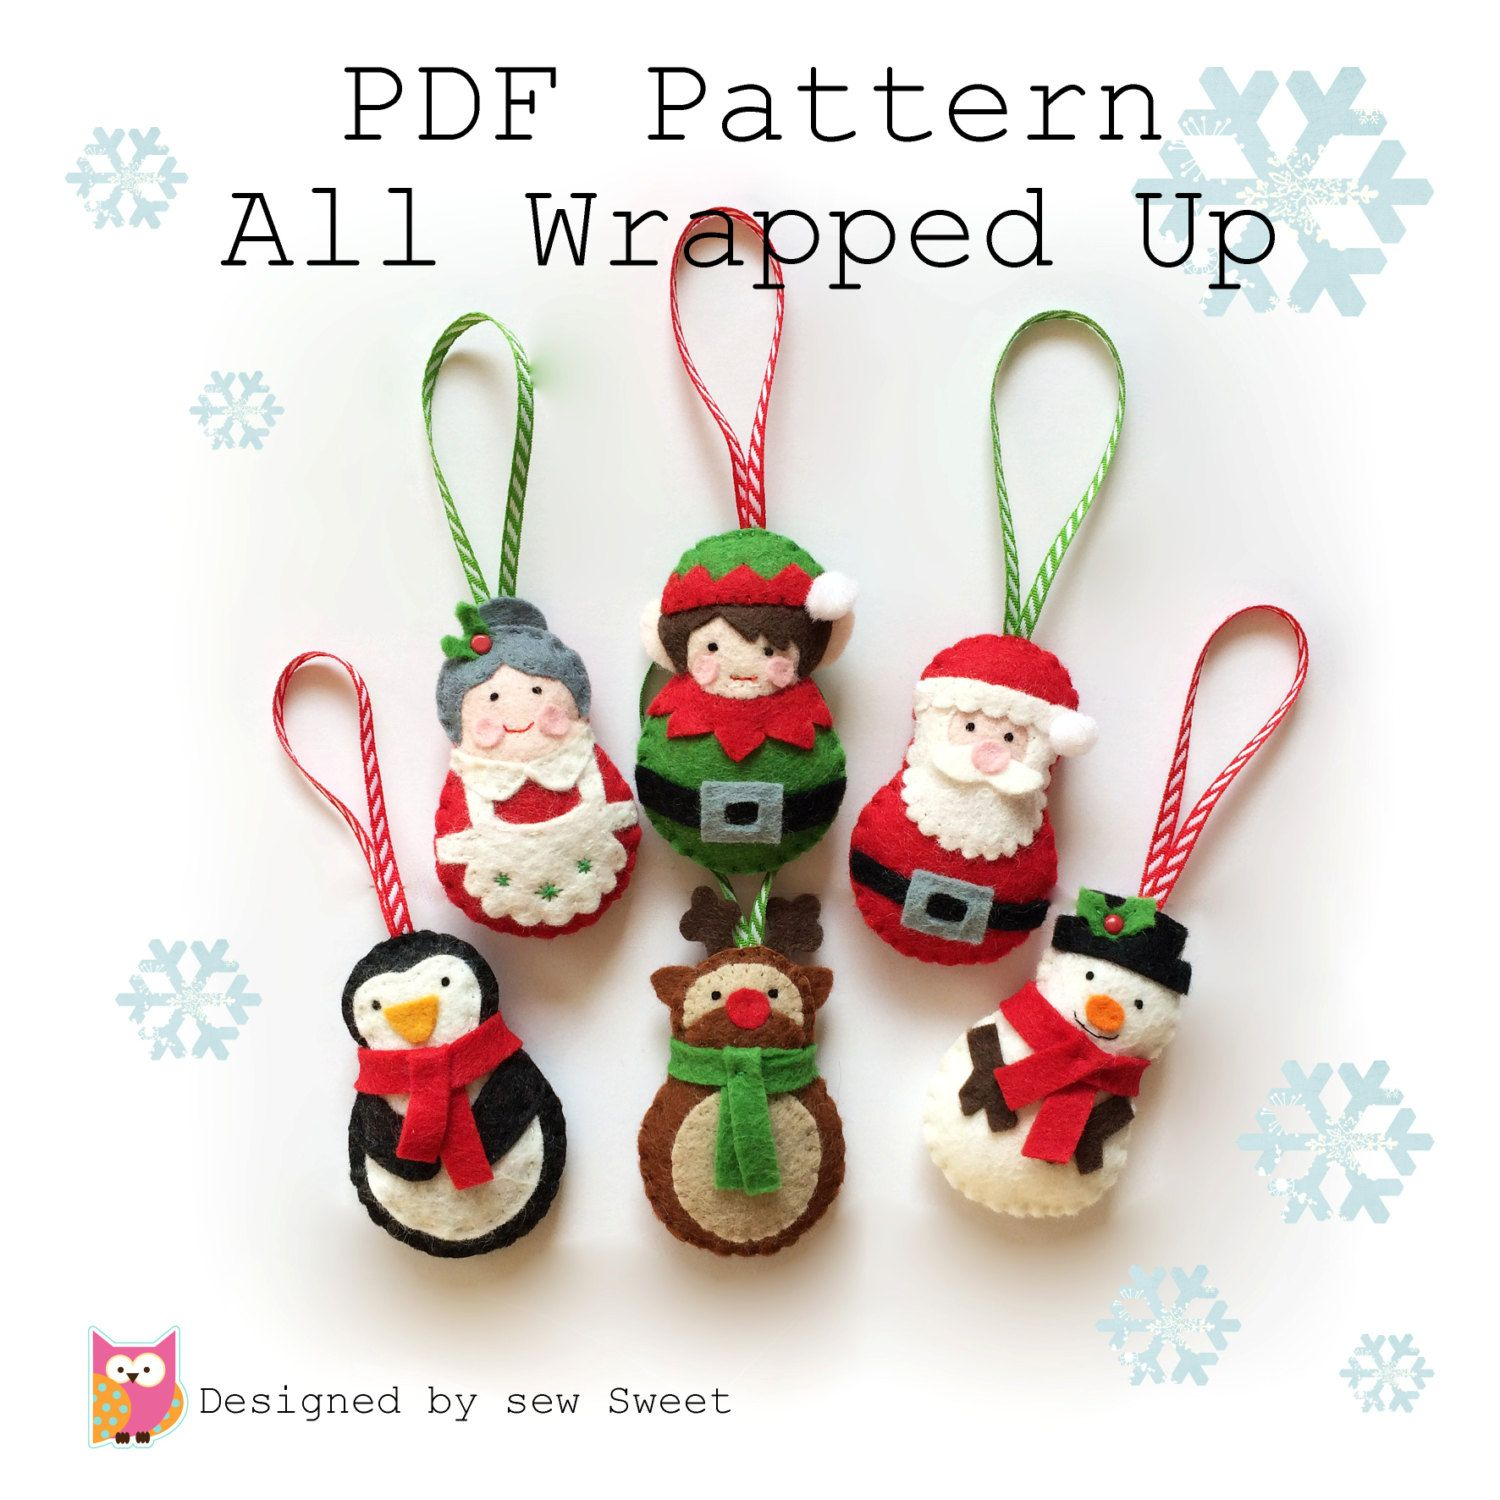 All Wrapped up Christmas Ornament decorations PDF PATTERN tree